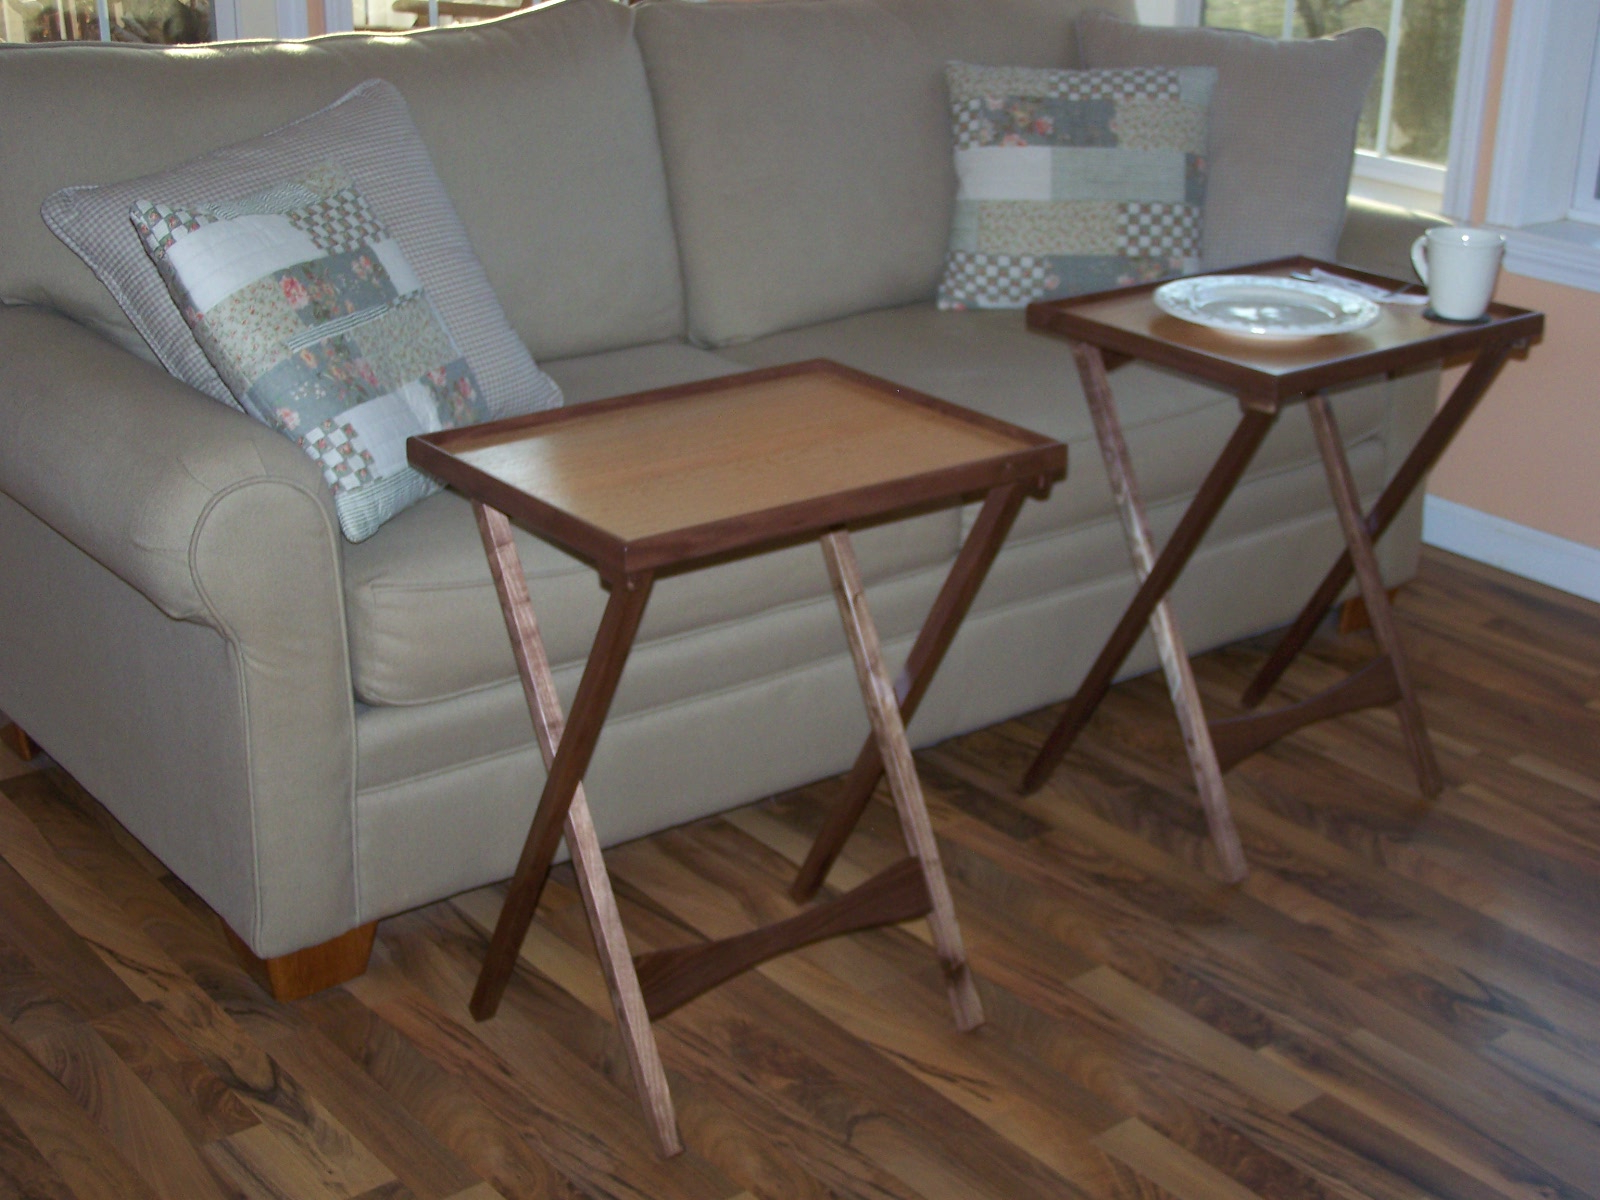 Tv Table Trays Ikea — Bmpath Furniture Throughout Popular Folding Tv Trays With Stand (View 19 of 20)